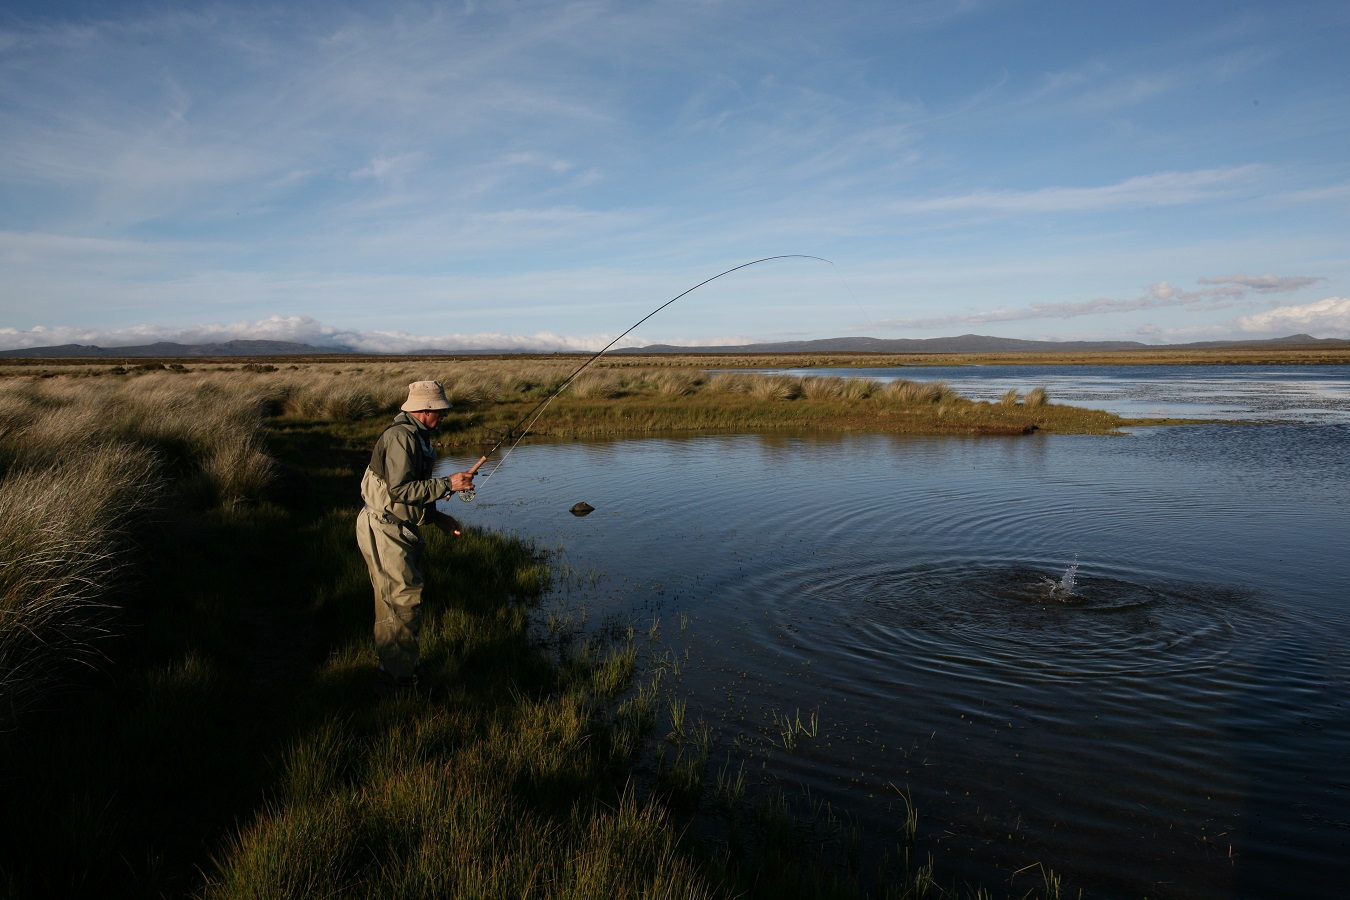 Rainbow Lodge - success on Western Lakes tailing trout